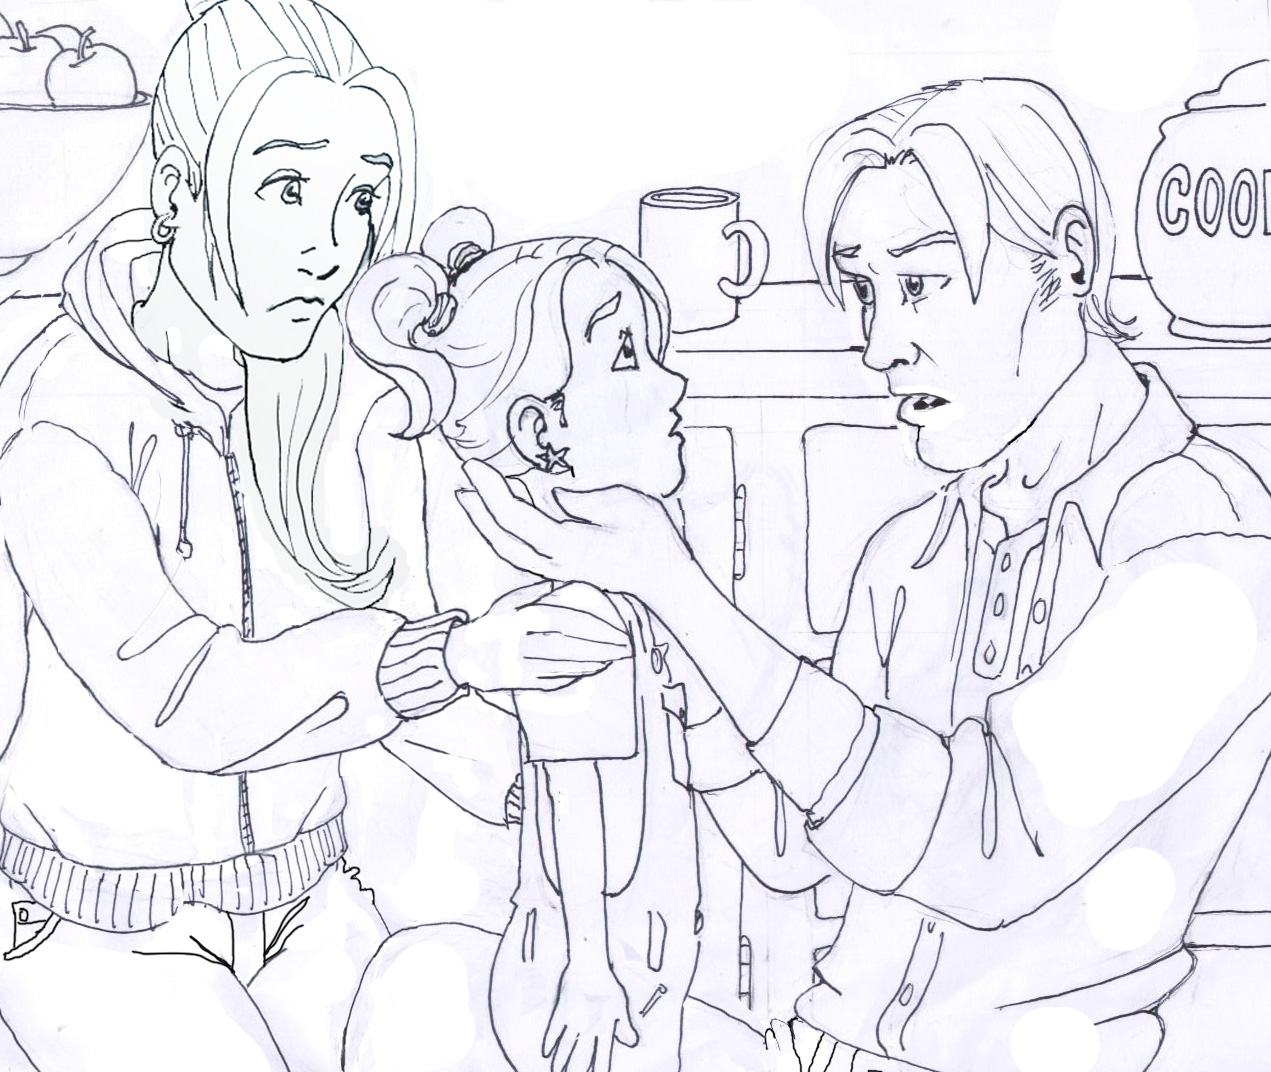 Stranger Coloring Sheets Coloring Pages